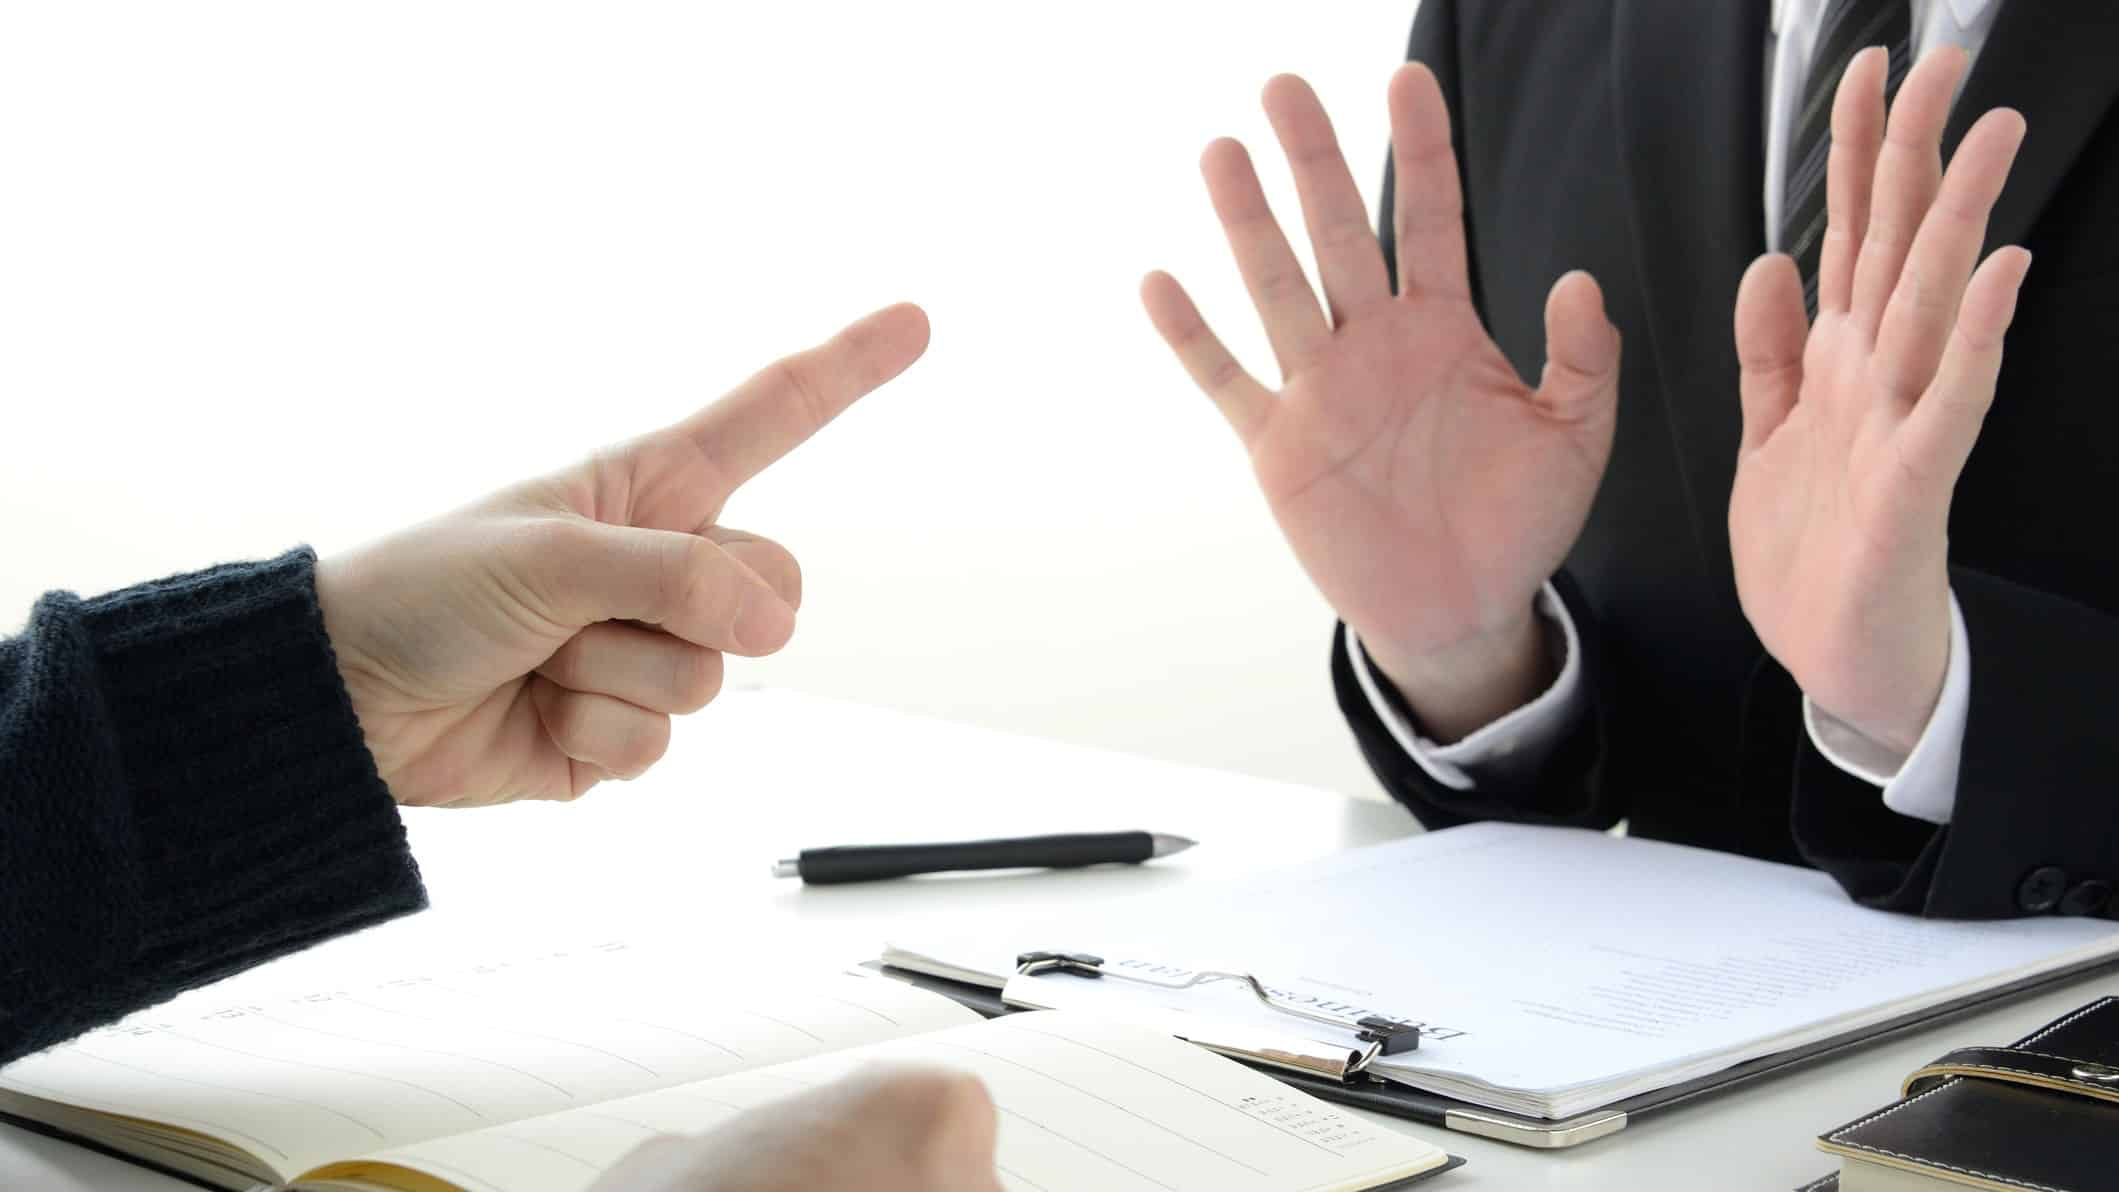 Two buisnessmen: one poining a finger, the other holding his hands up in denial